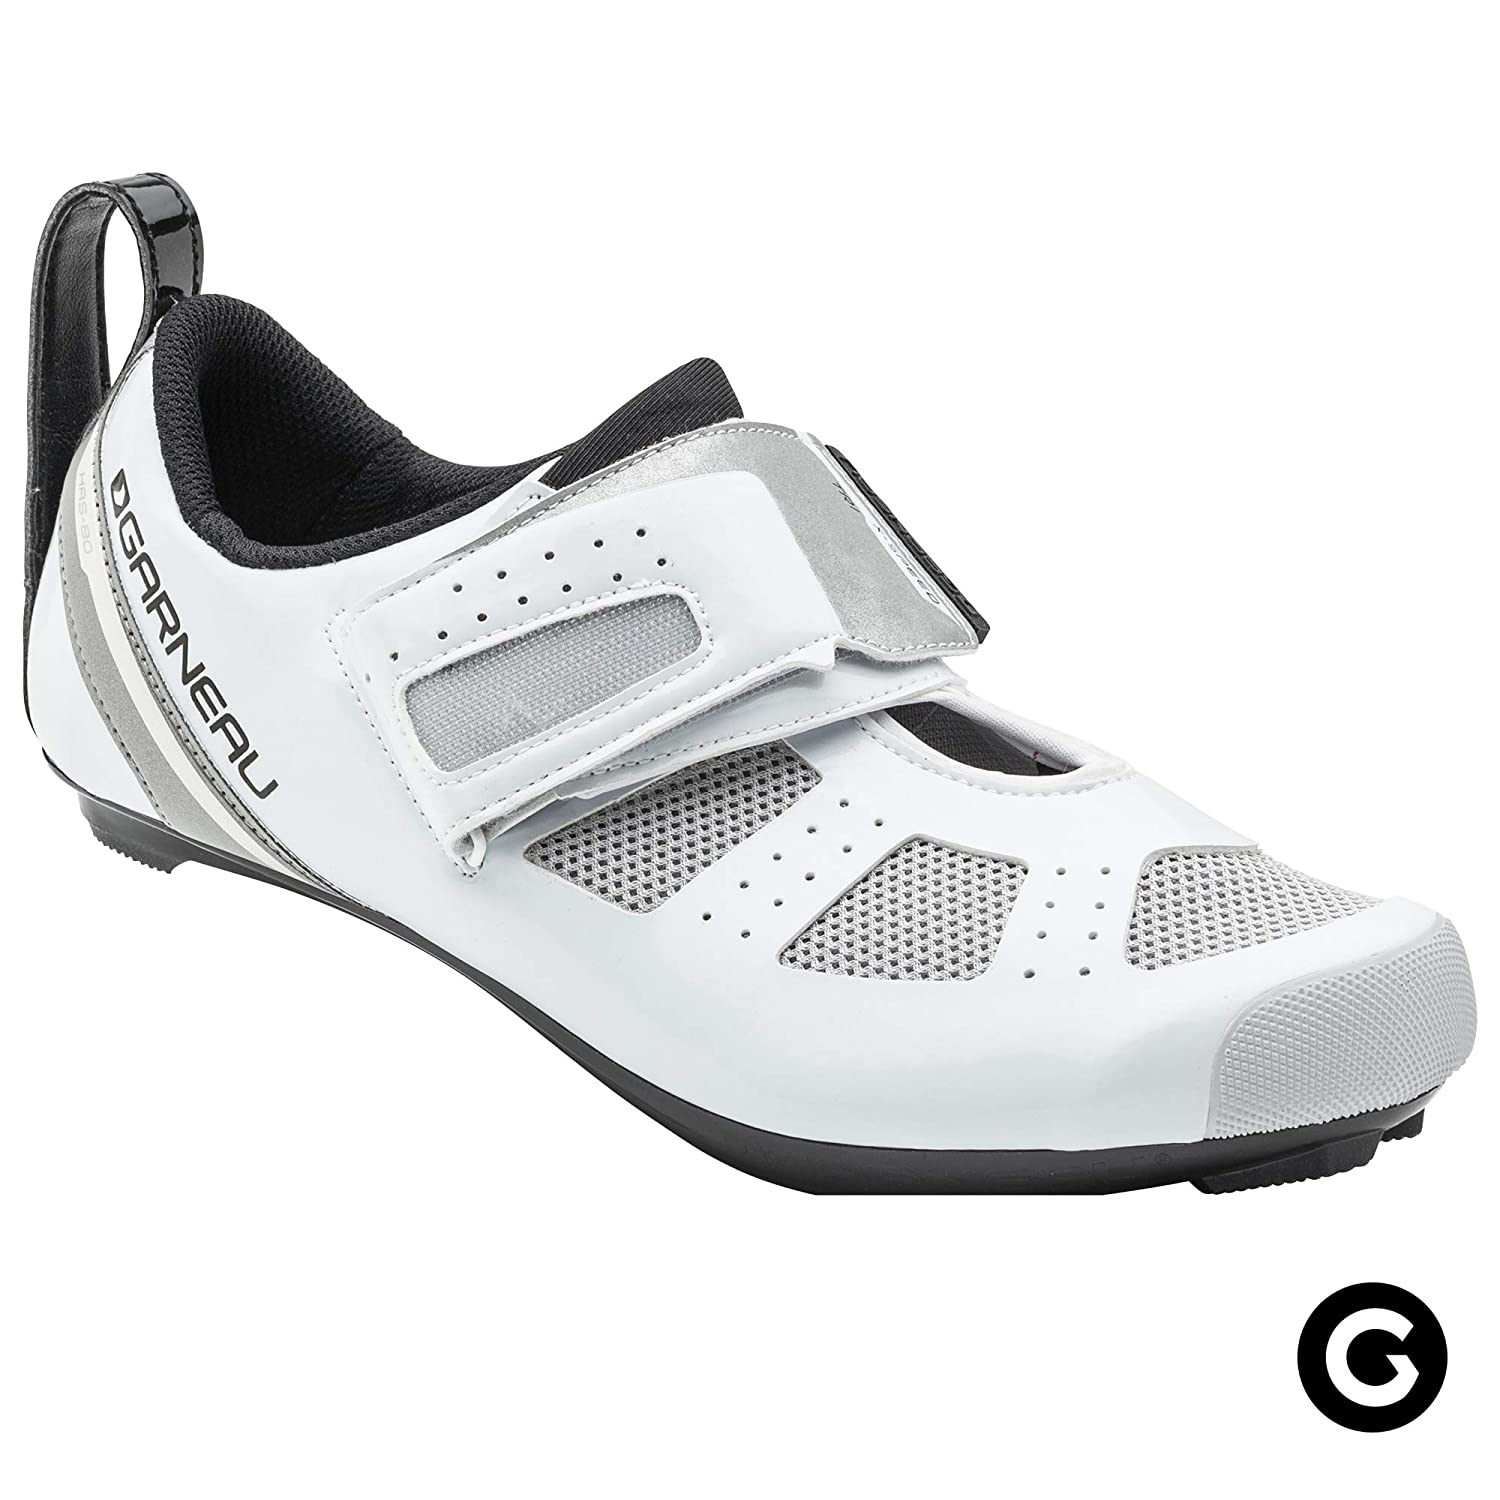 Louis Garneau Men s Tri X-Speed III Triathlon Cycling Shoes for Racing and Indoor Biking, Compatible with Major Road and SPD Pedals